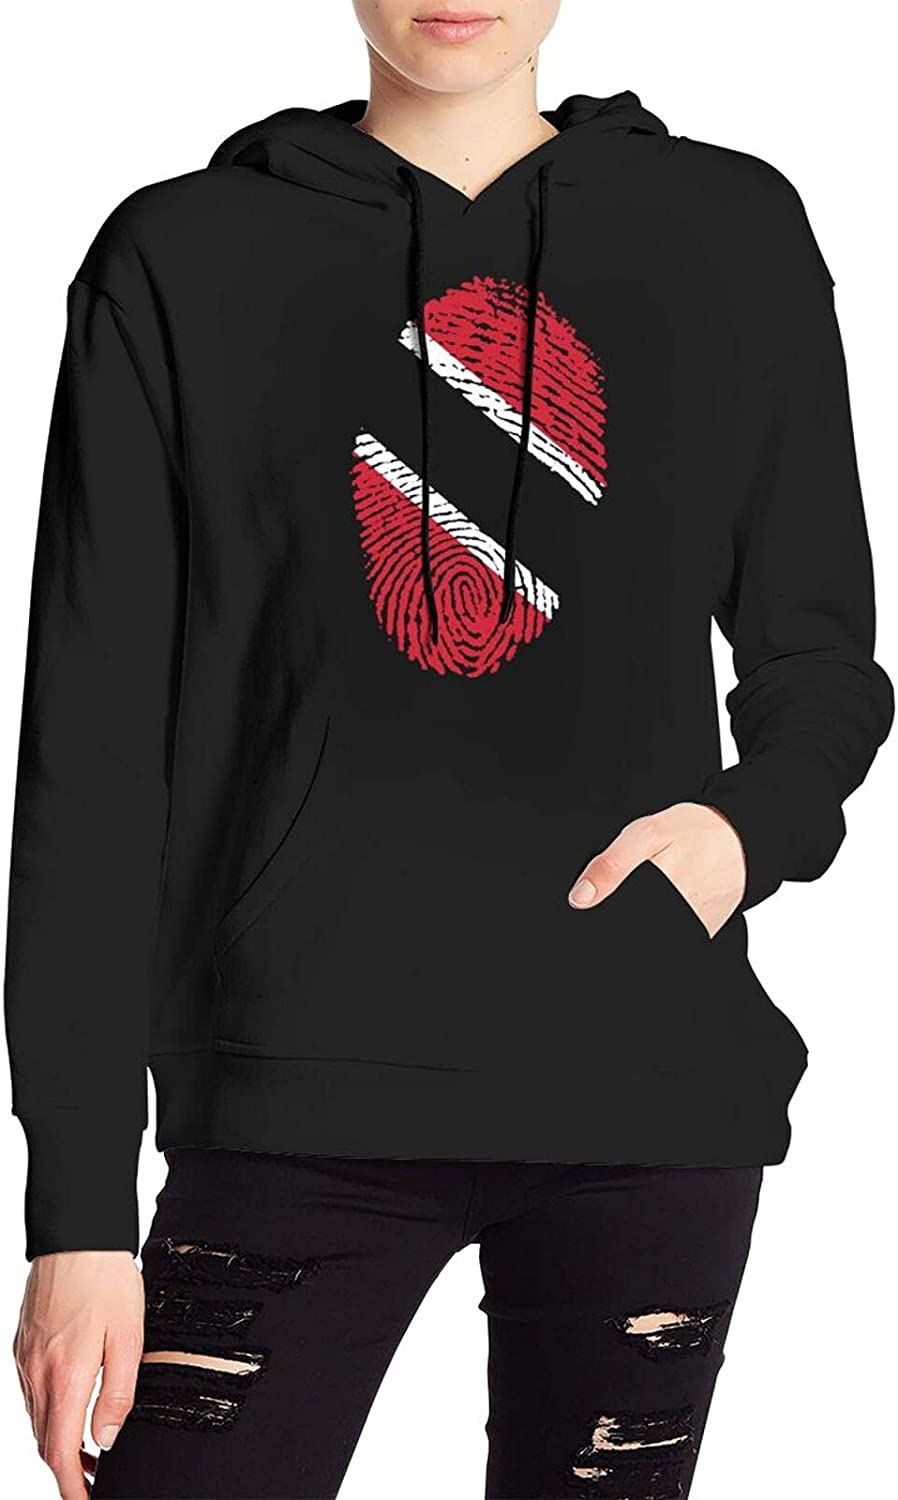 Flag Of Trinidad And Tobago Sweater Fashion Hoody With Pocket For Men'S Women'S